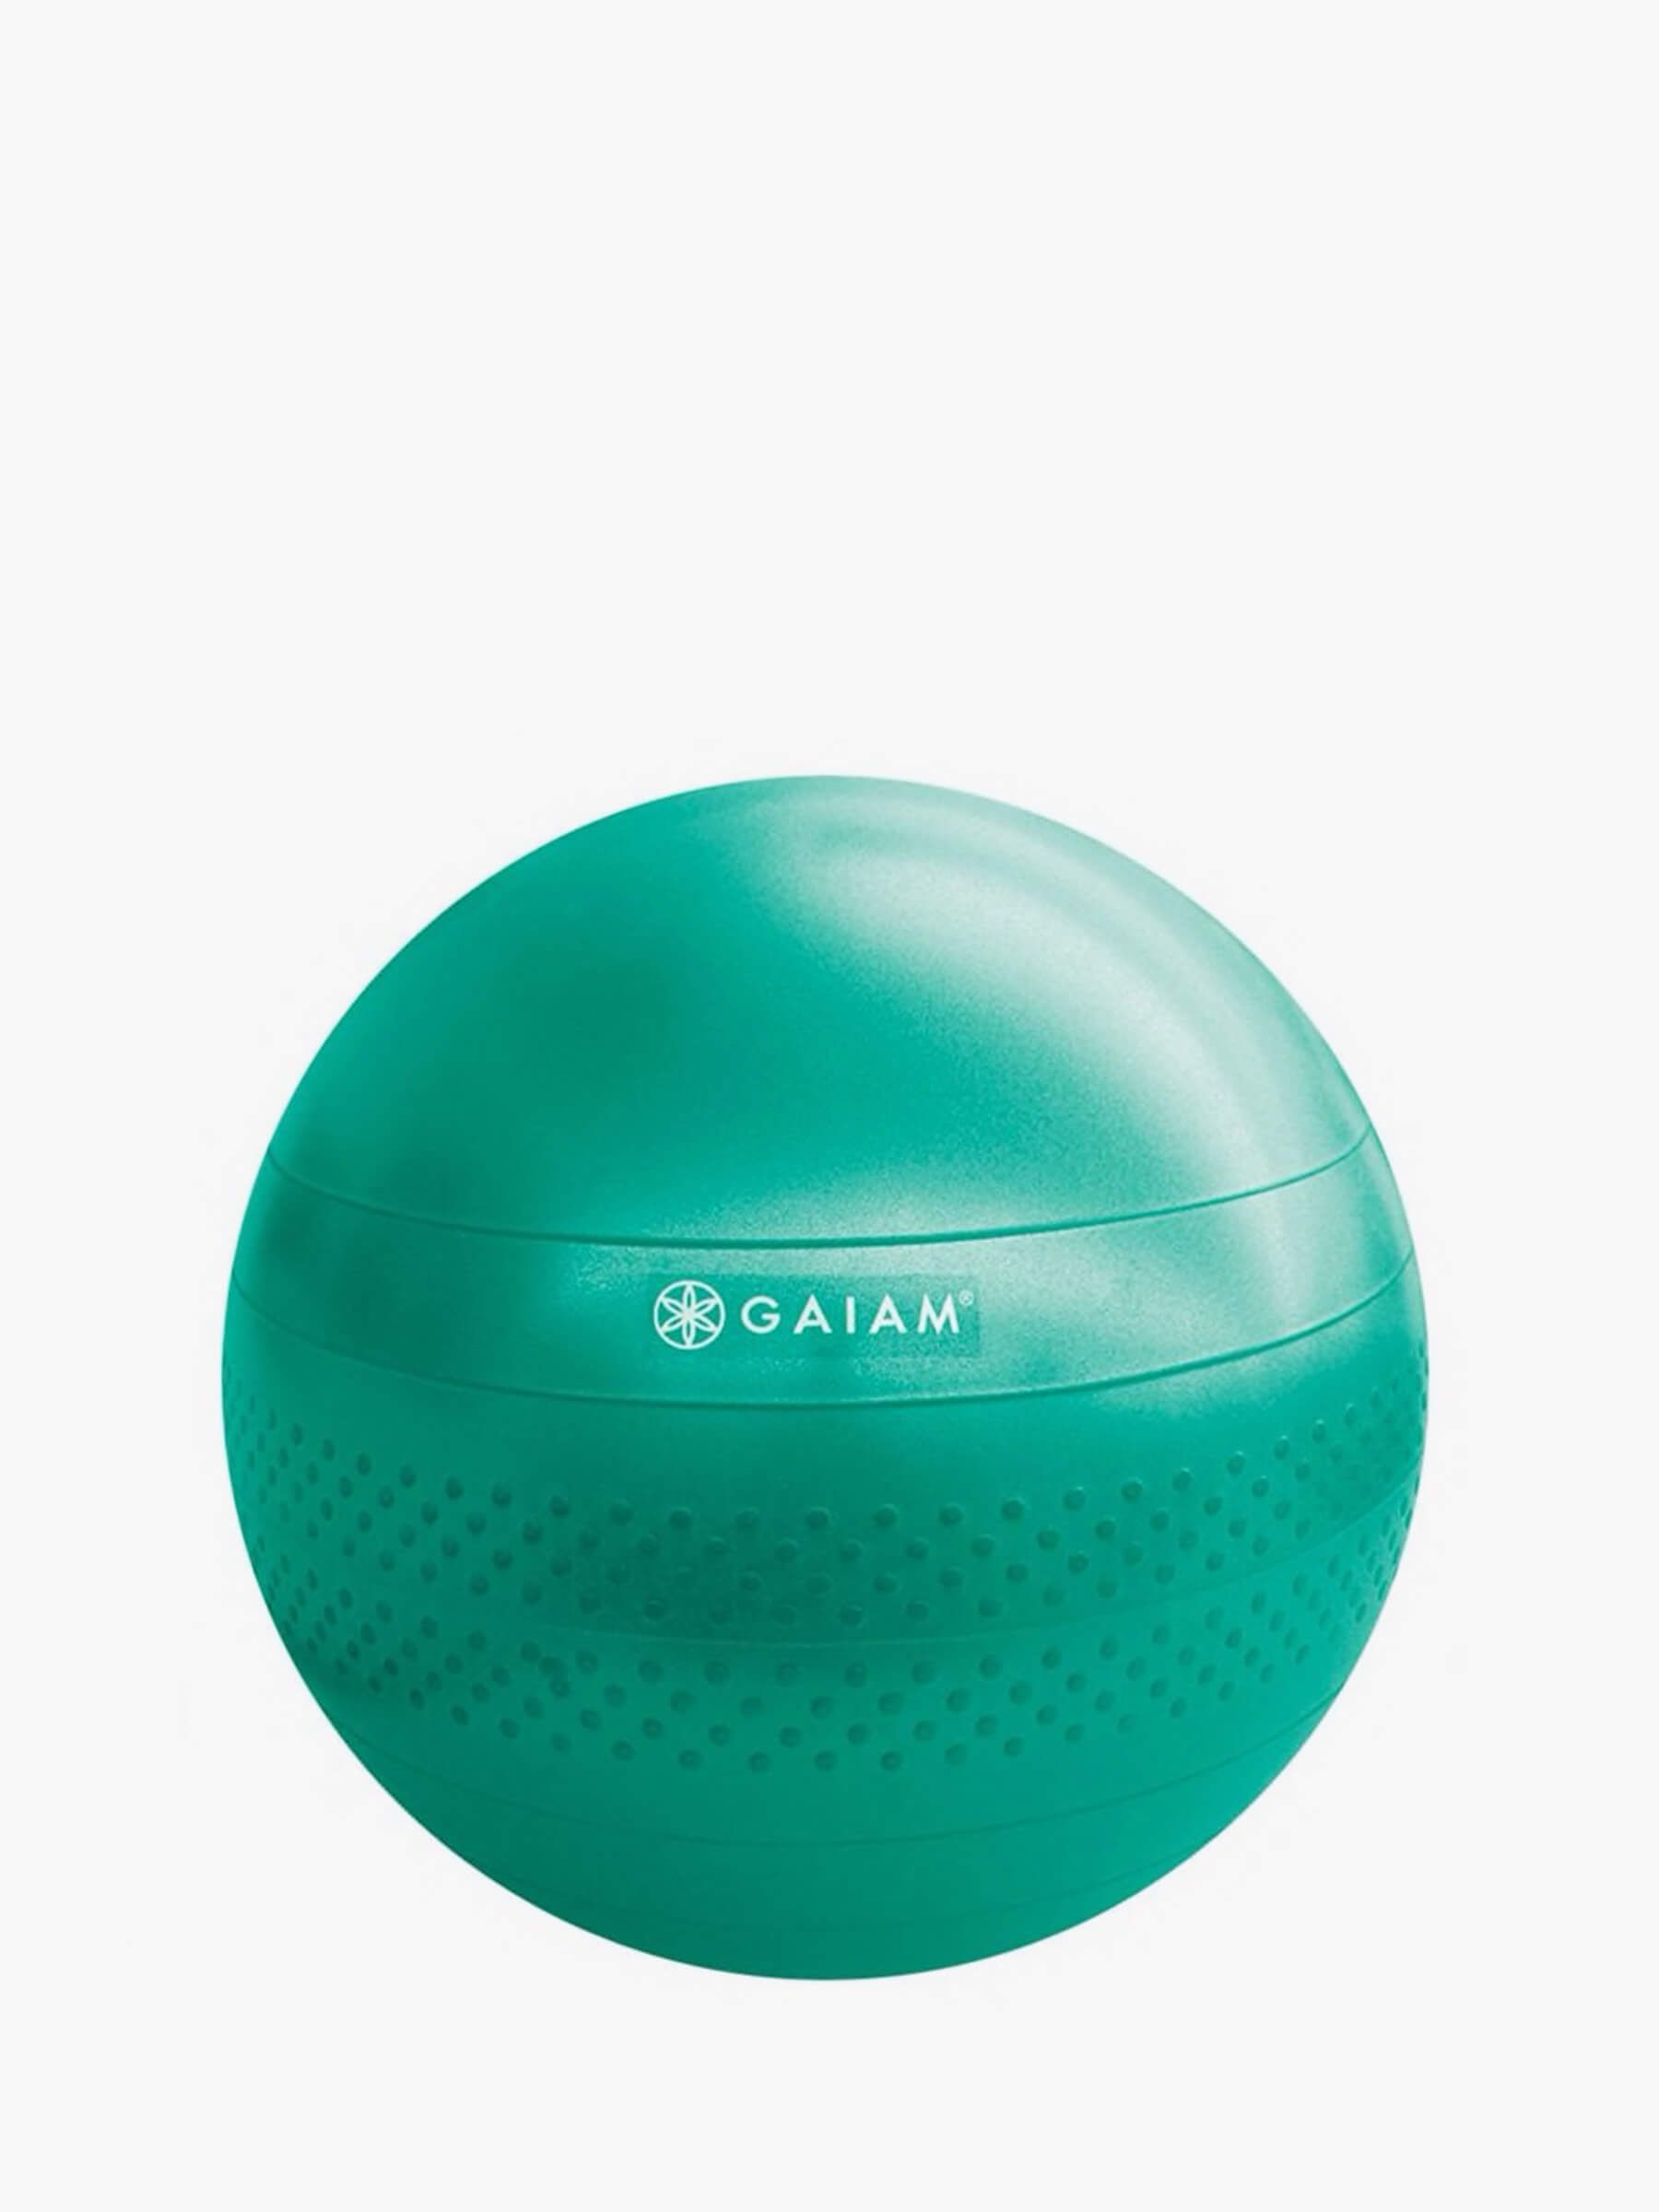 Gaiam Gaiam 65cm Total Body Balance Ball Kit, Green